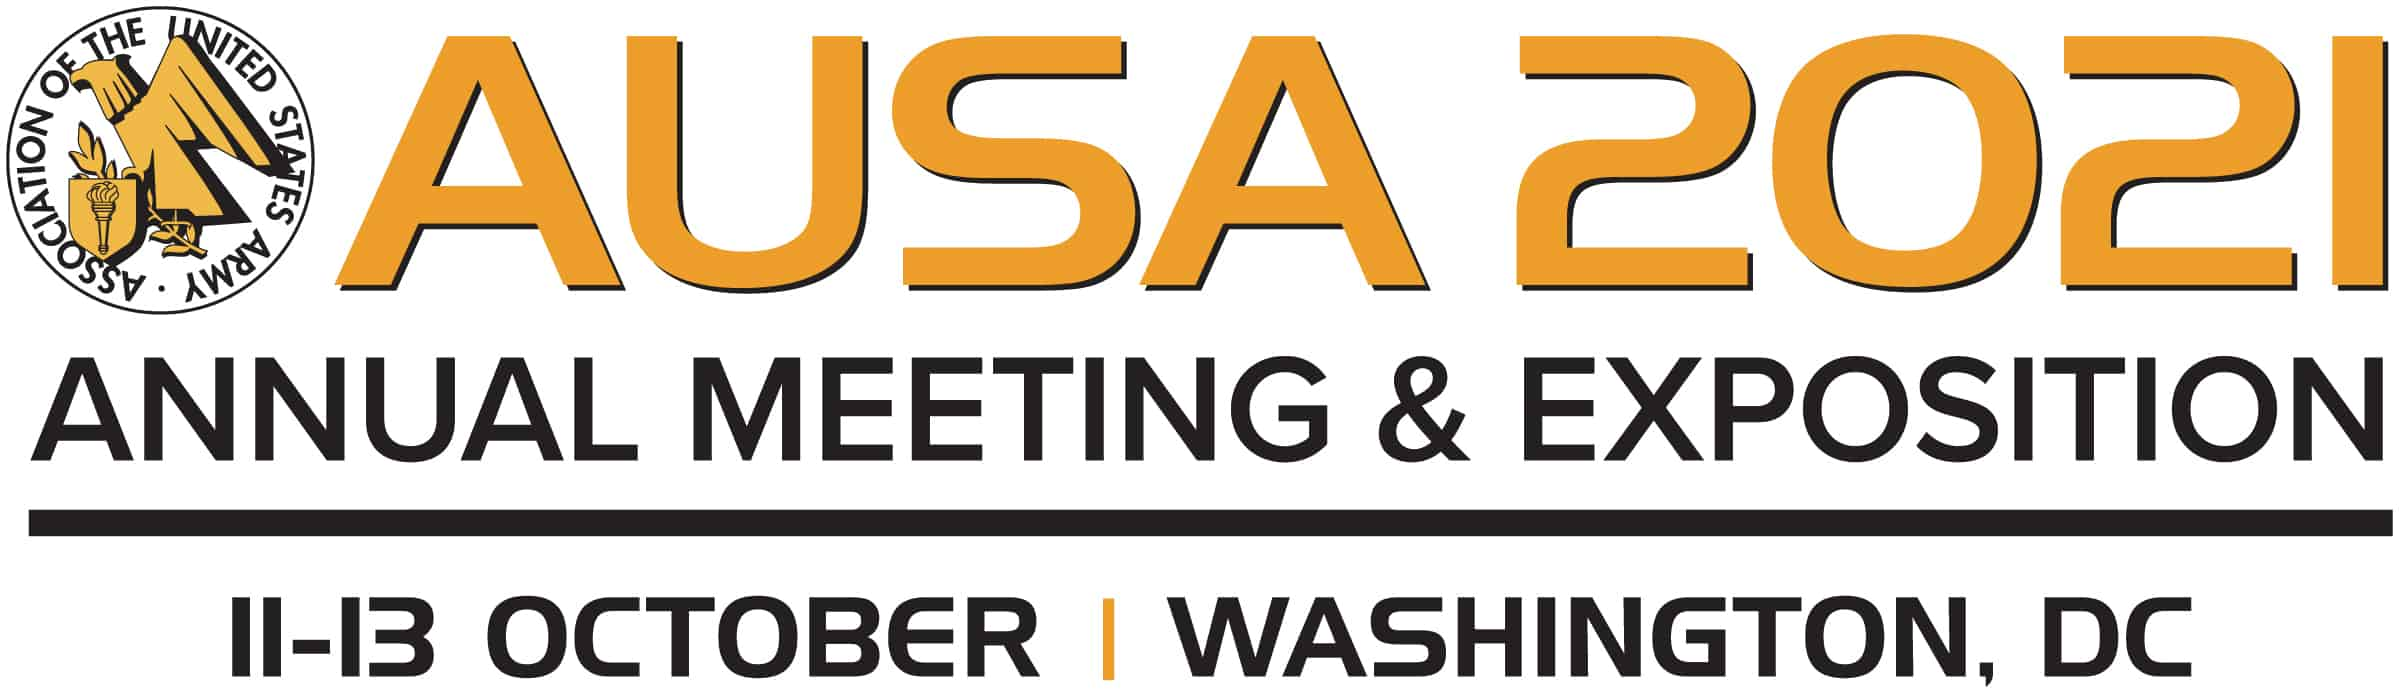 AUSA 2021 Annual Meeting & Exposition